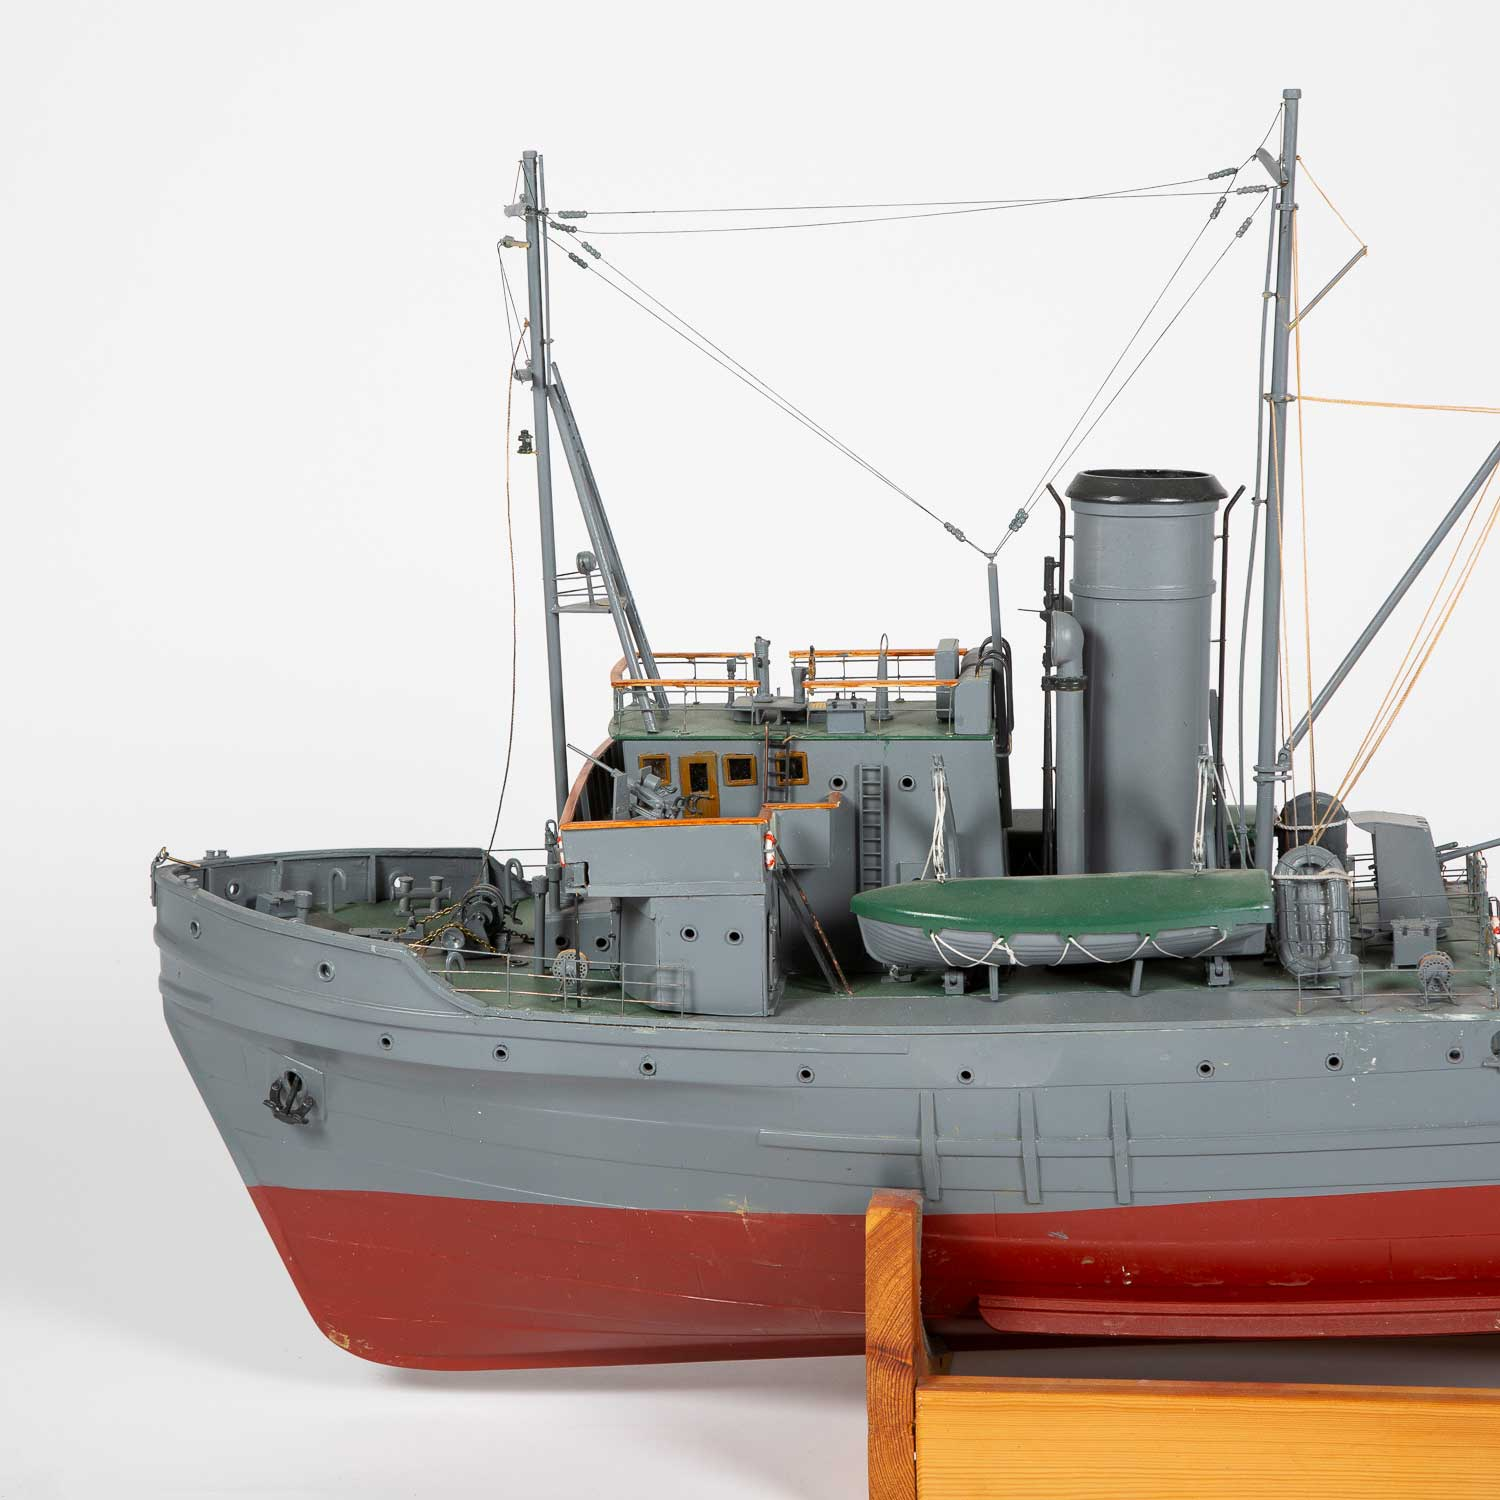 Model of a WWII tug